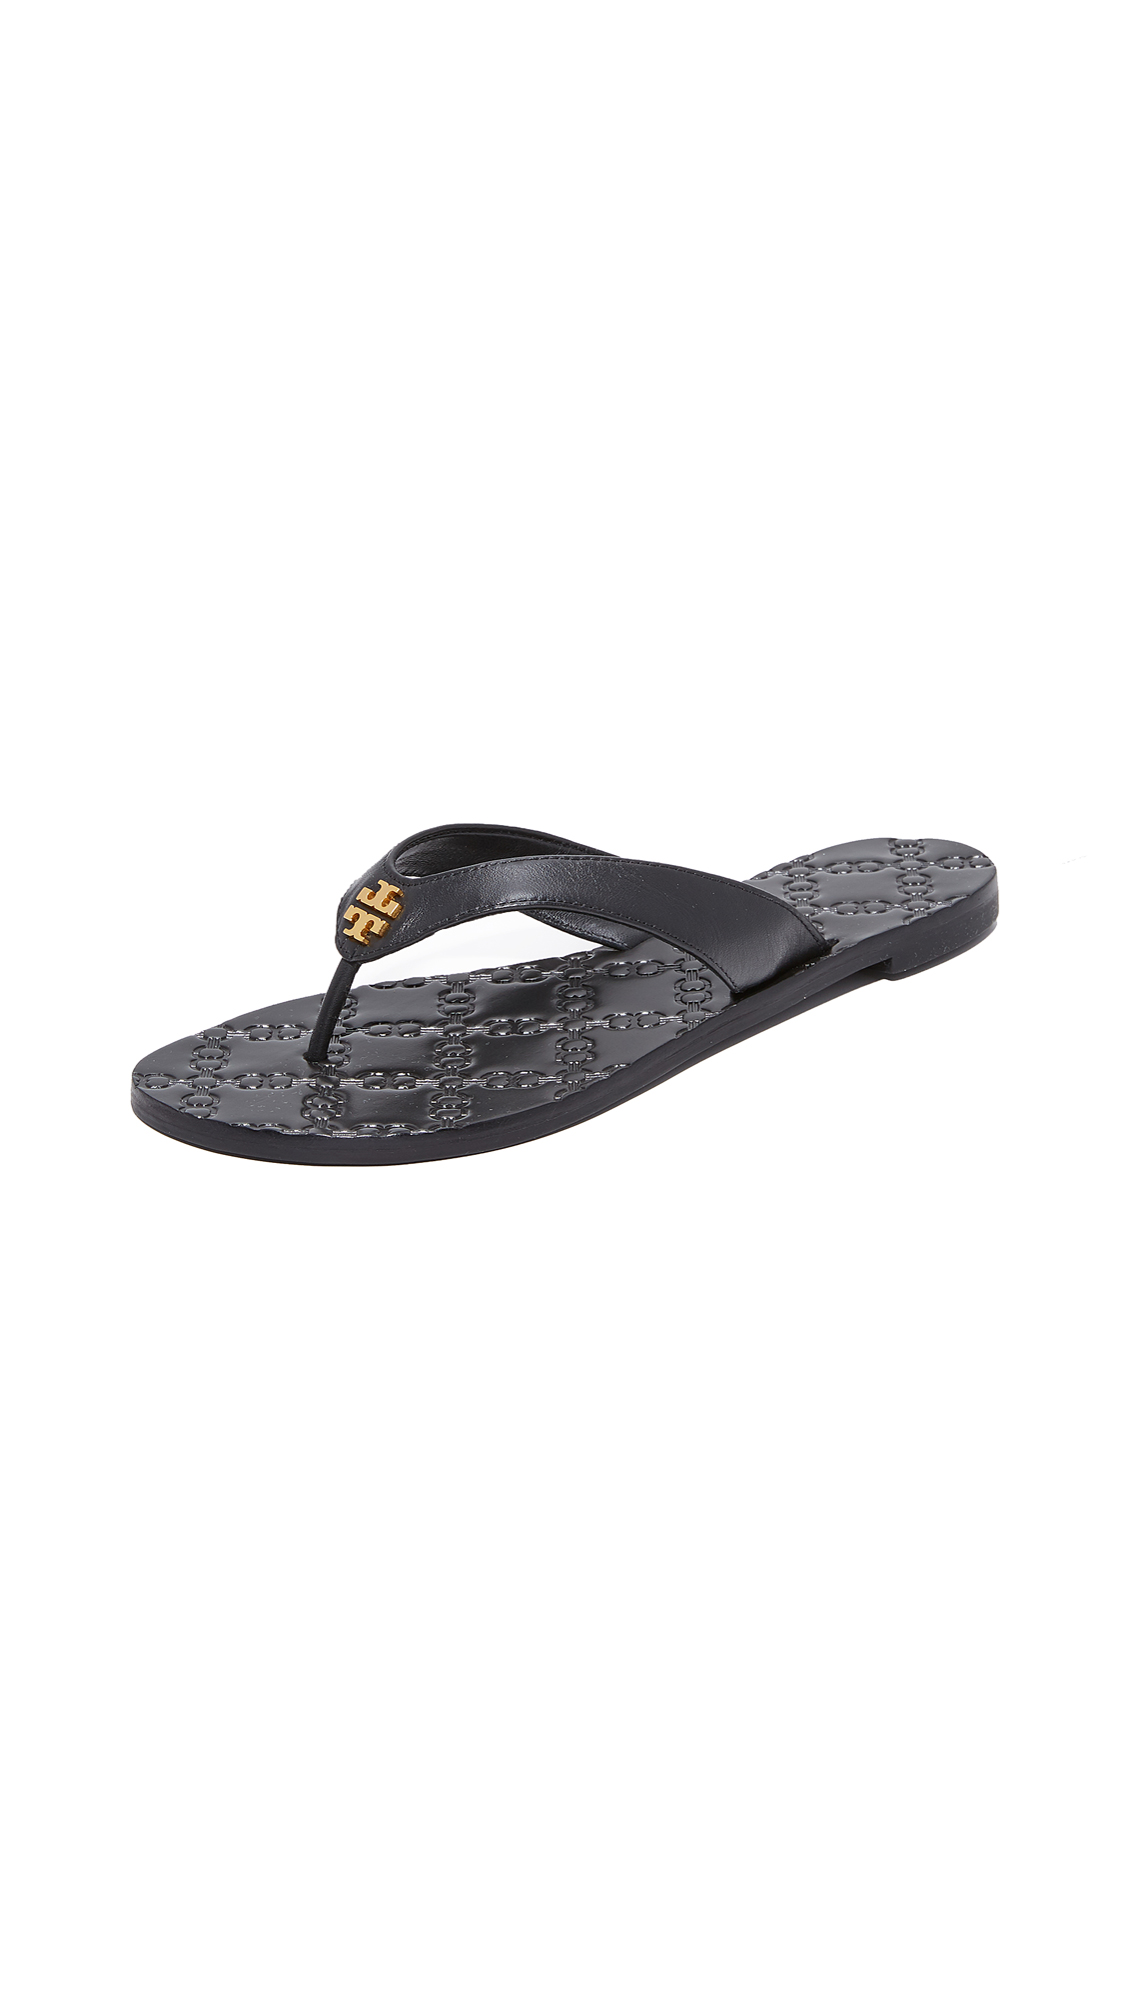 Tory Burch Monroe Thong Sandals - Black